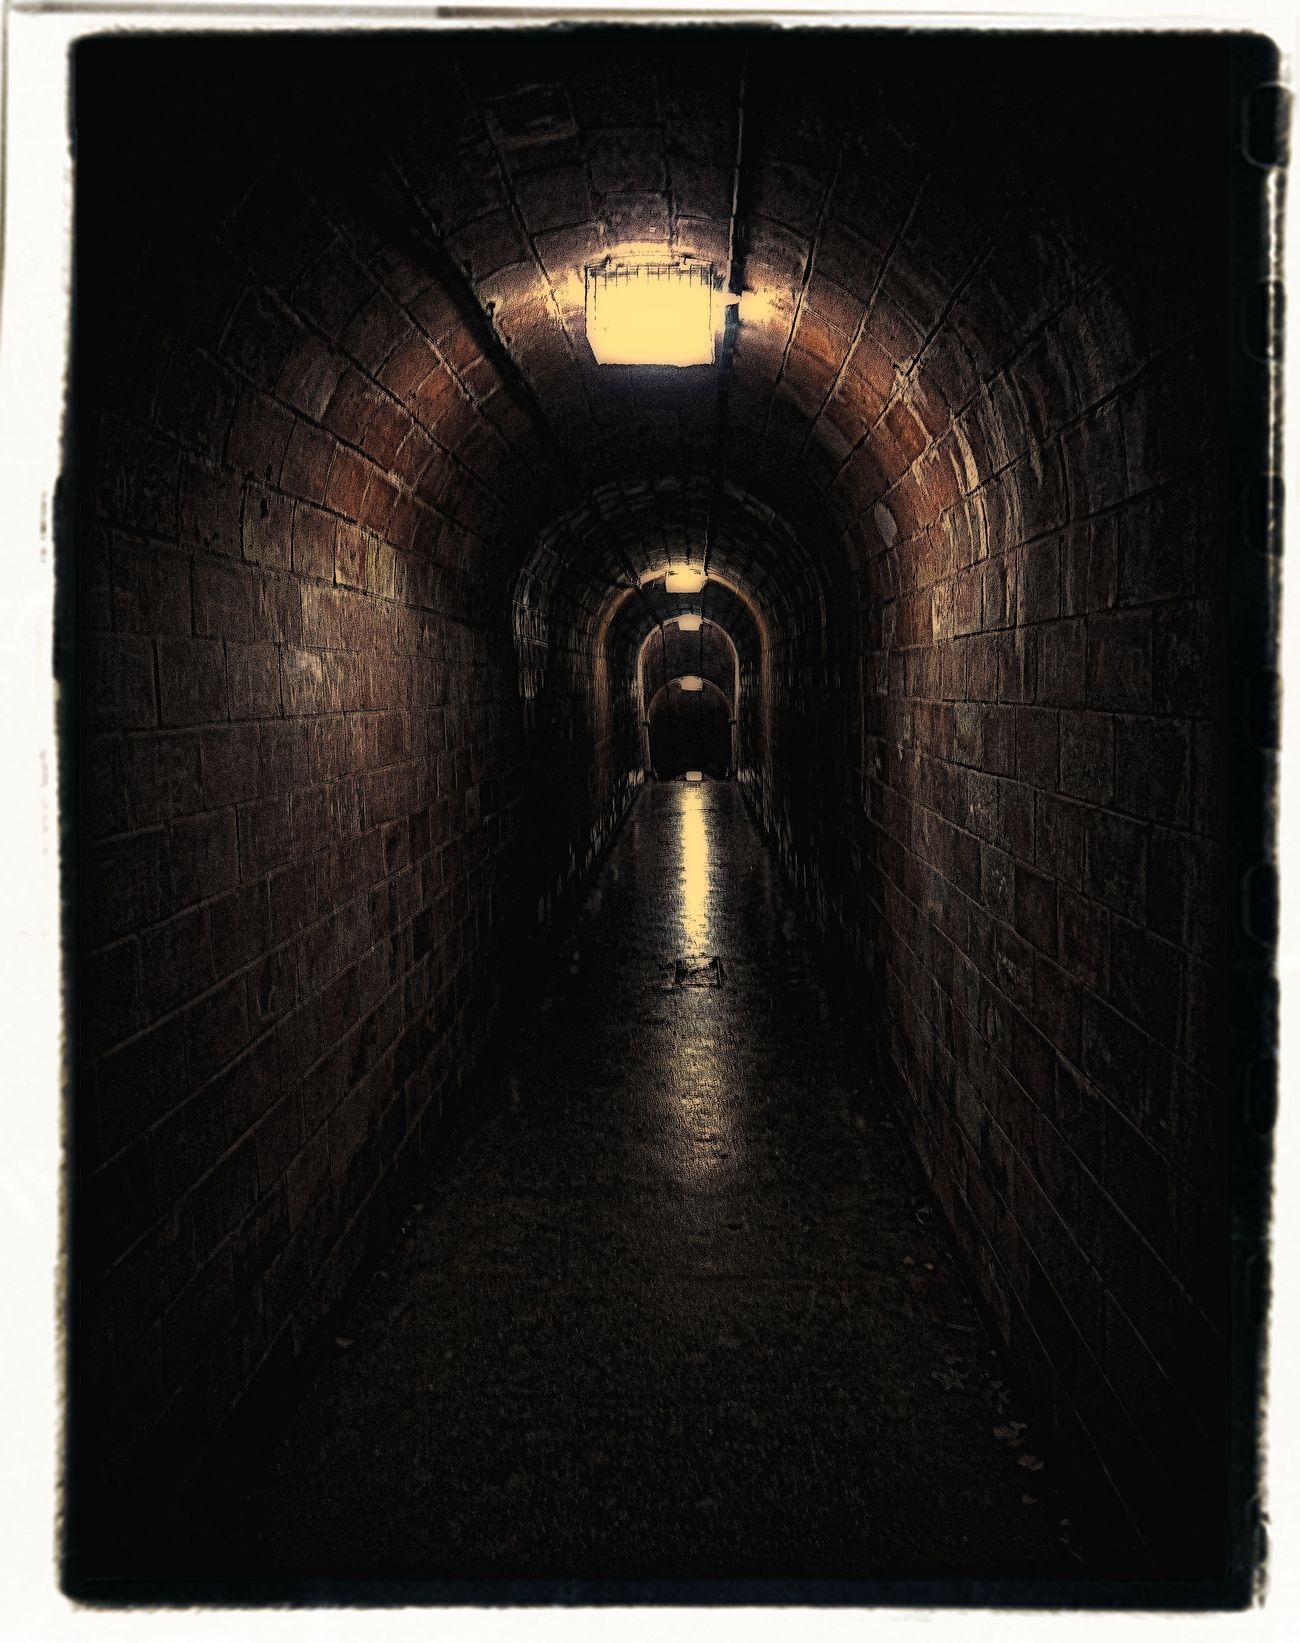 tunnel 2 by awjay